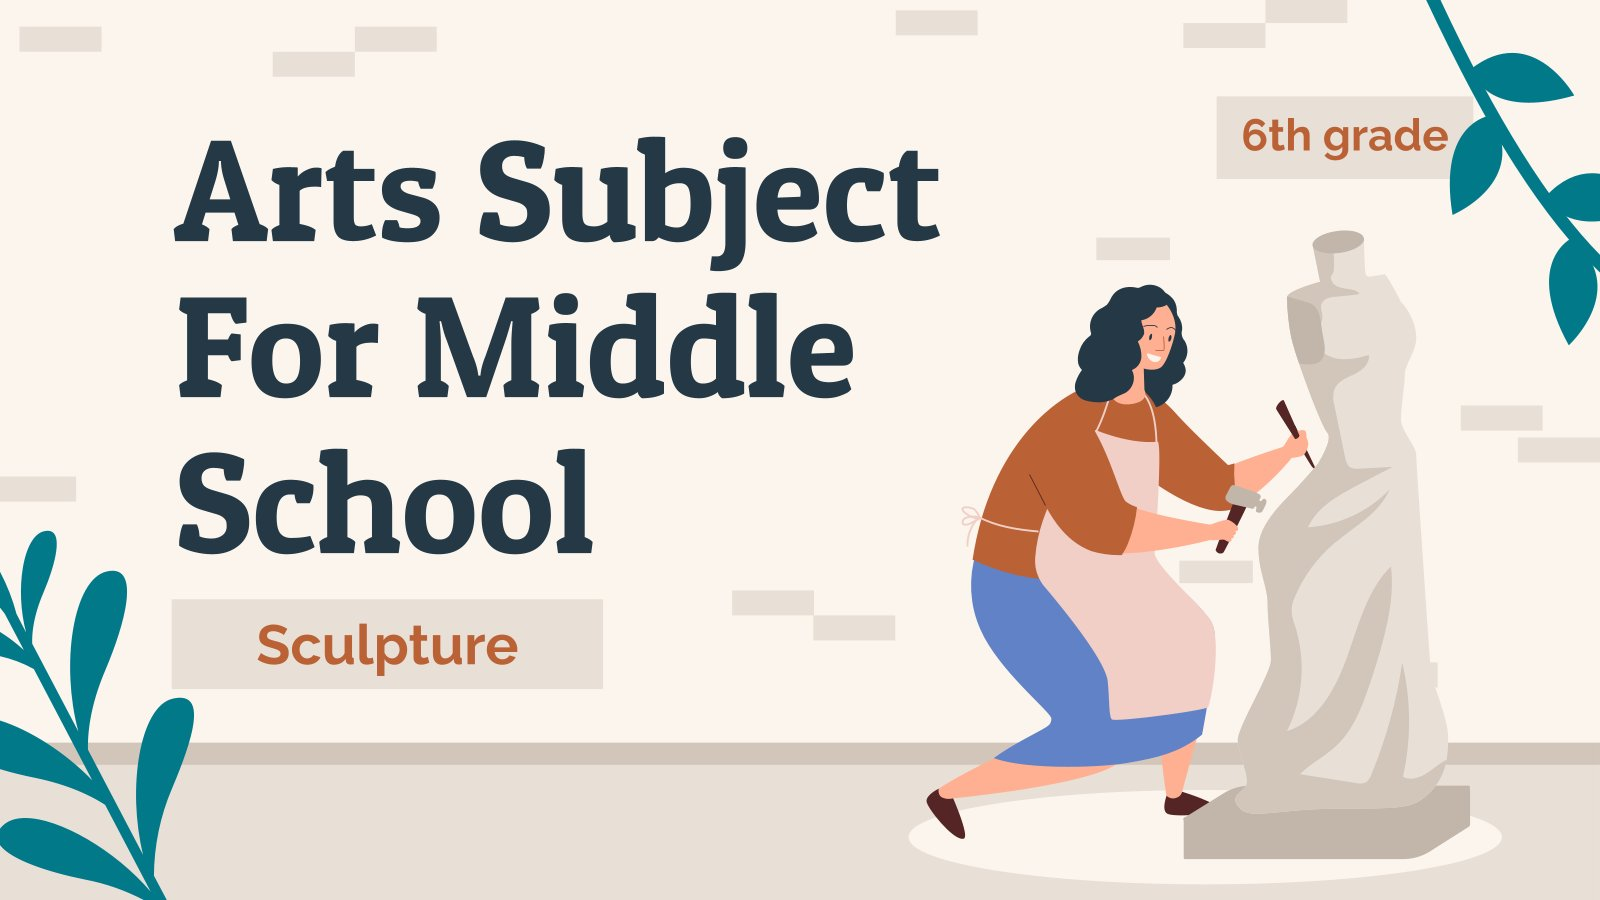 Arts Subject for Middle School - 6th Grade: Sculpture presentation template